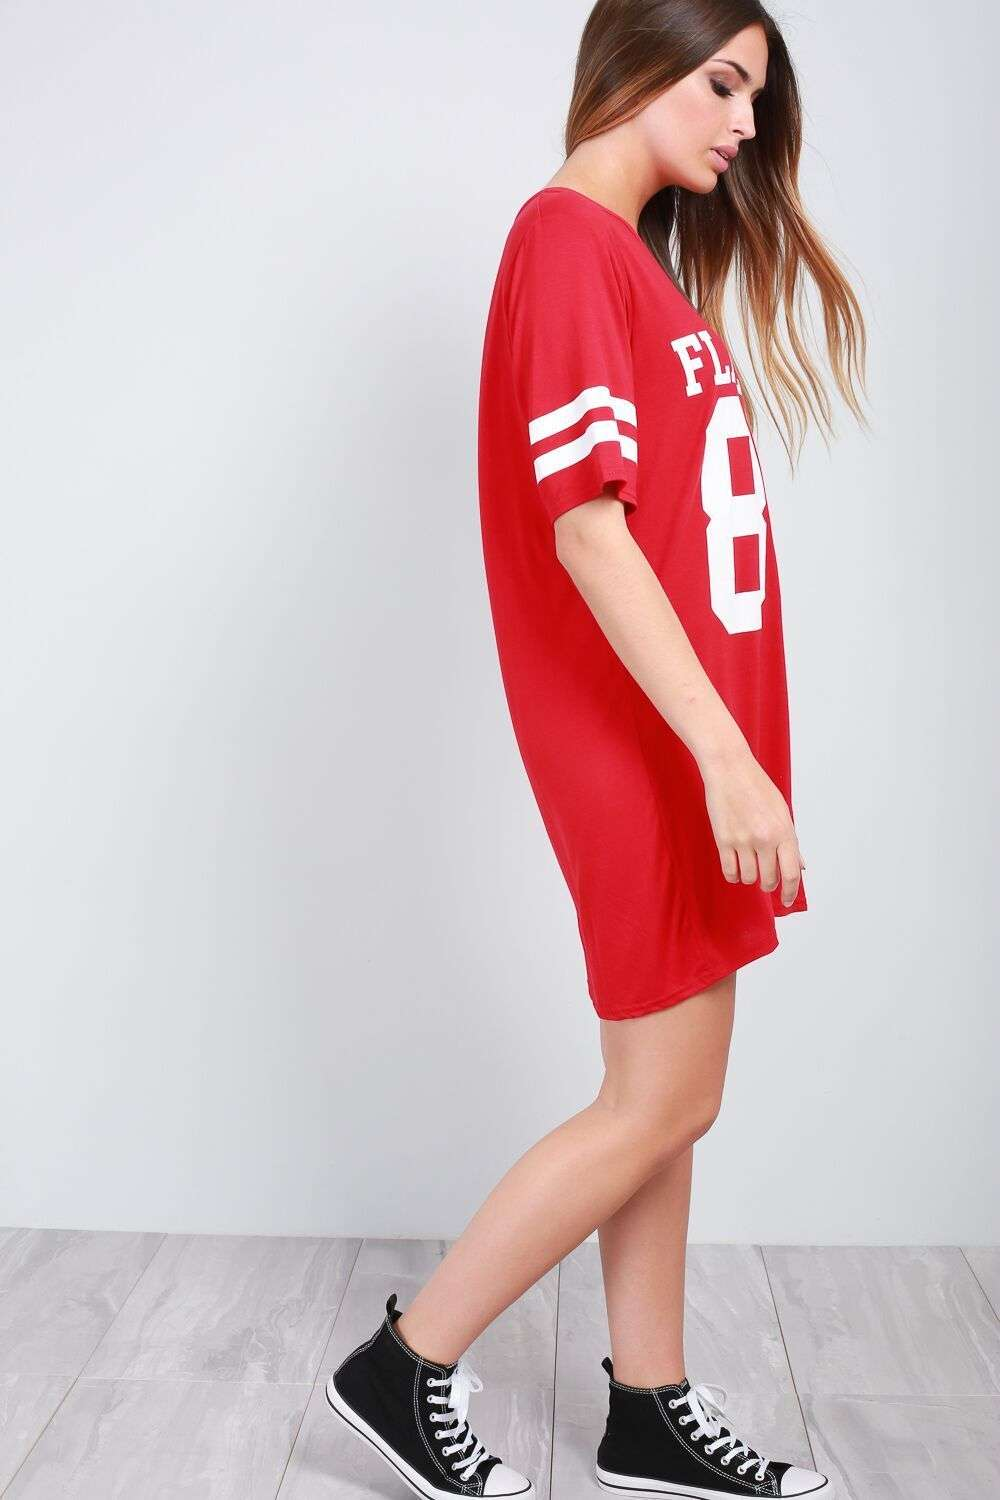 Emy Flawless Slogan Print TShirt Dress - bejealous-com